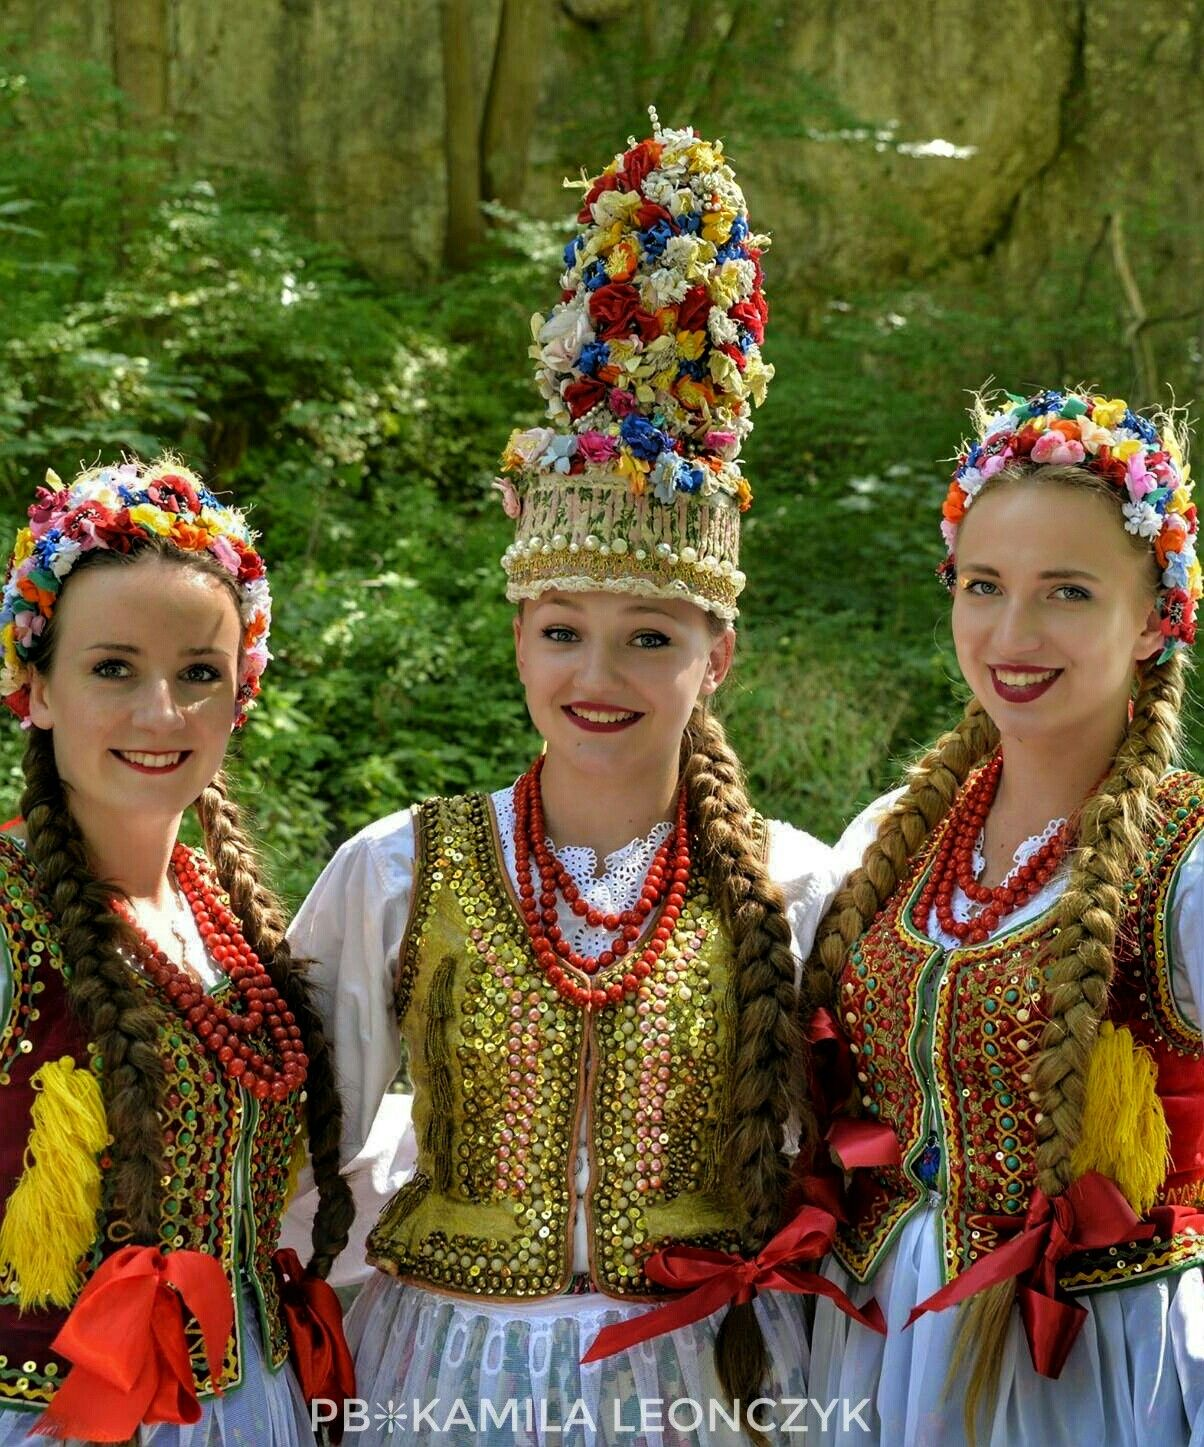 Slavic Bridal Flower Crowns From Polish Folklore Krakow Wreaths And Other Hair Ornaments Made Of Polish Traditional Costume Flower Crown Bridal Flower Crown